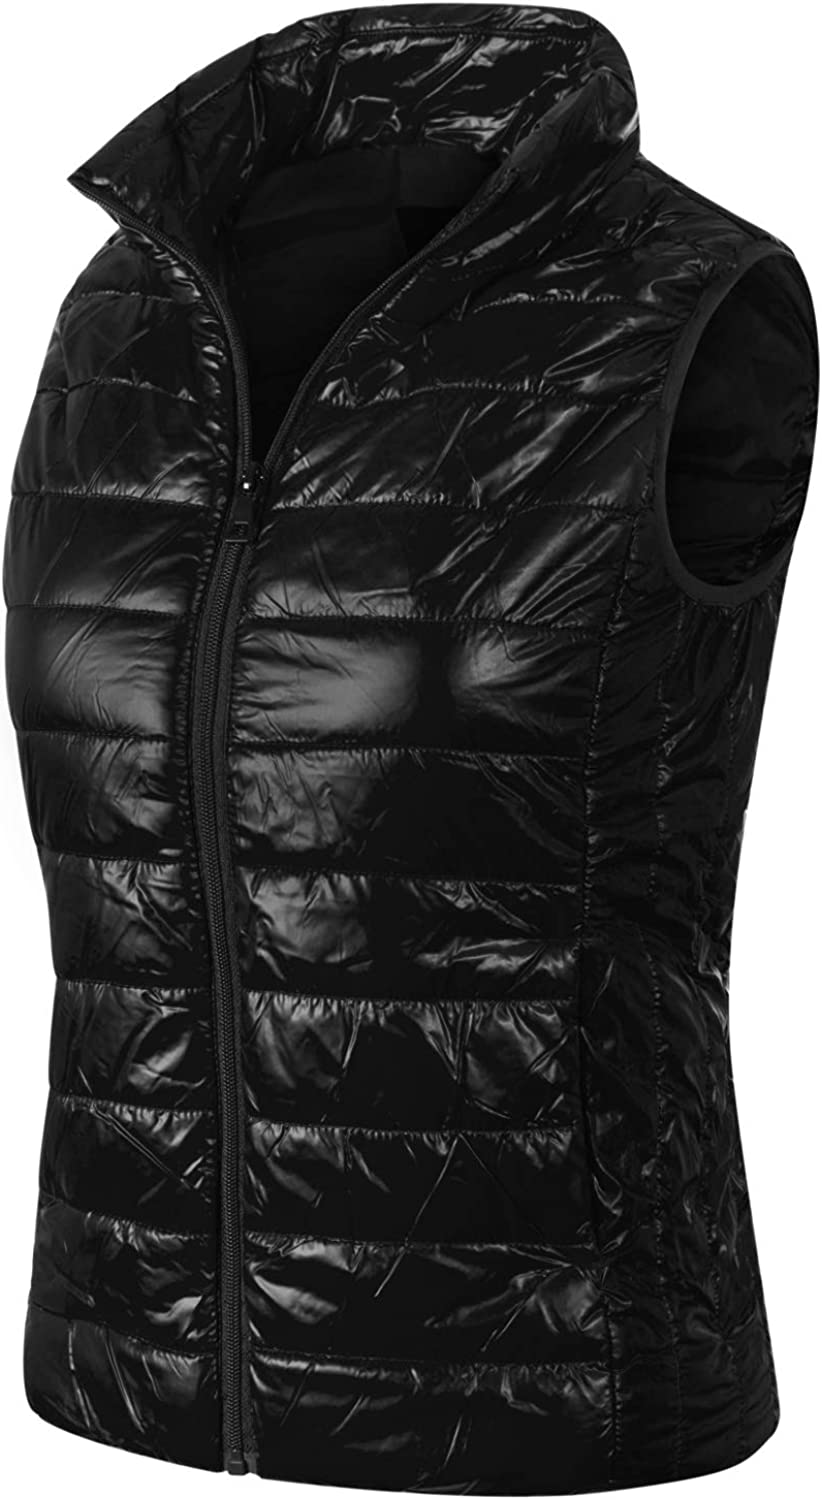 Instar Mode Women's Casual Warm Lightweight Quilted Puffer Down Vest Jacket Coat